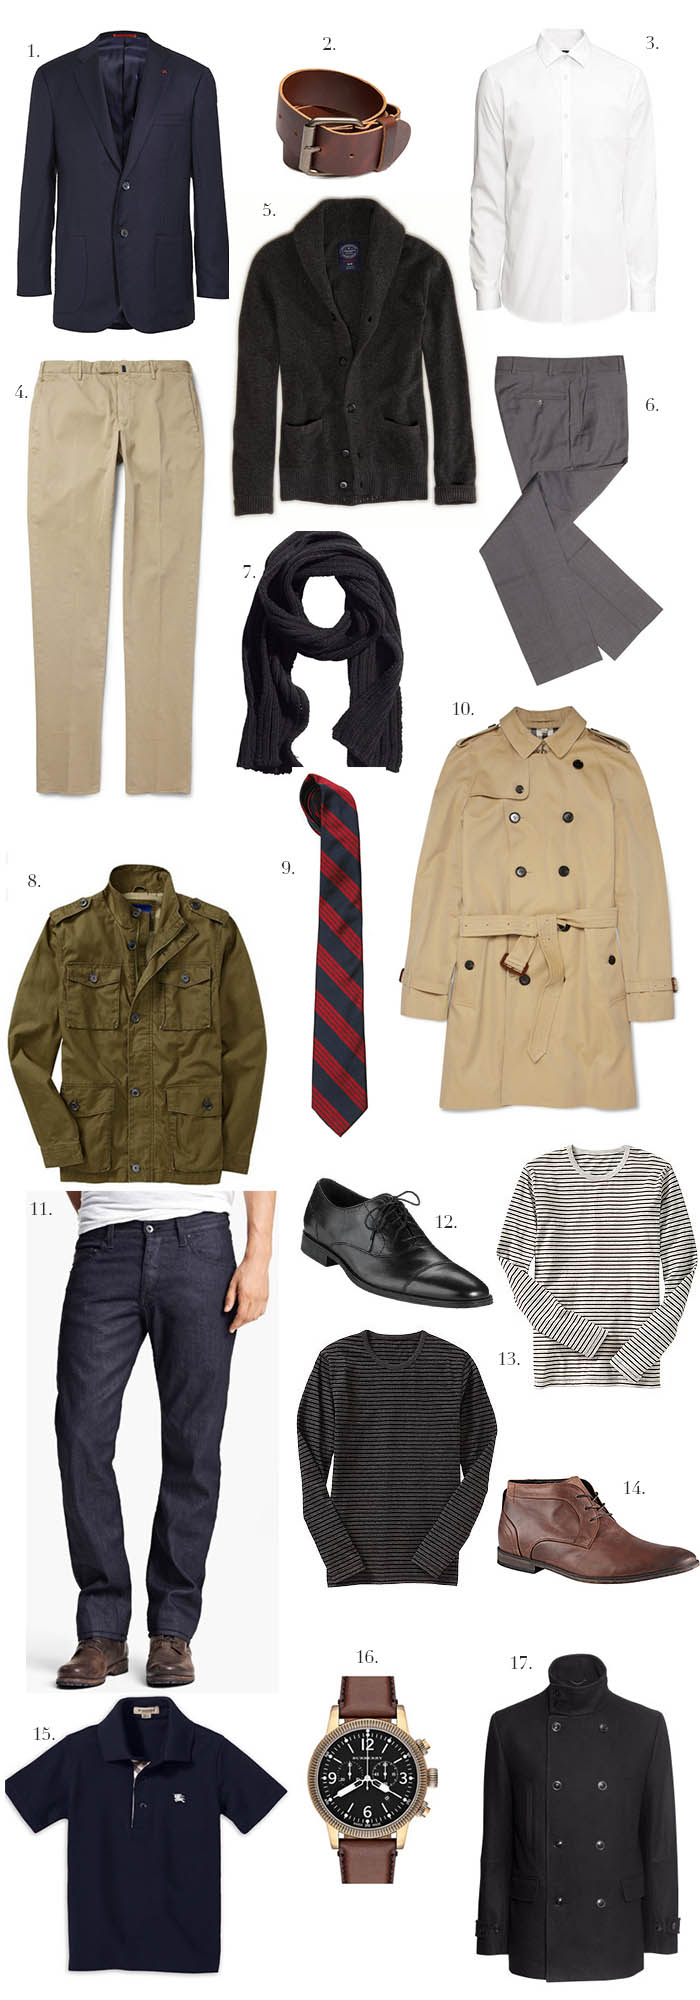 Wardrobe Must Haves: How To Look Fresh For Fall With These 18 Wardrobe Must Haves